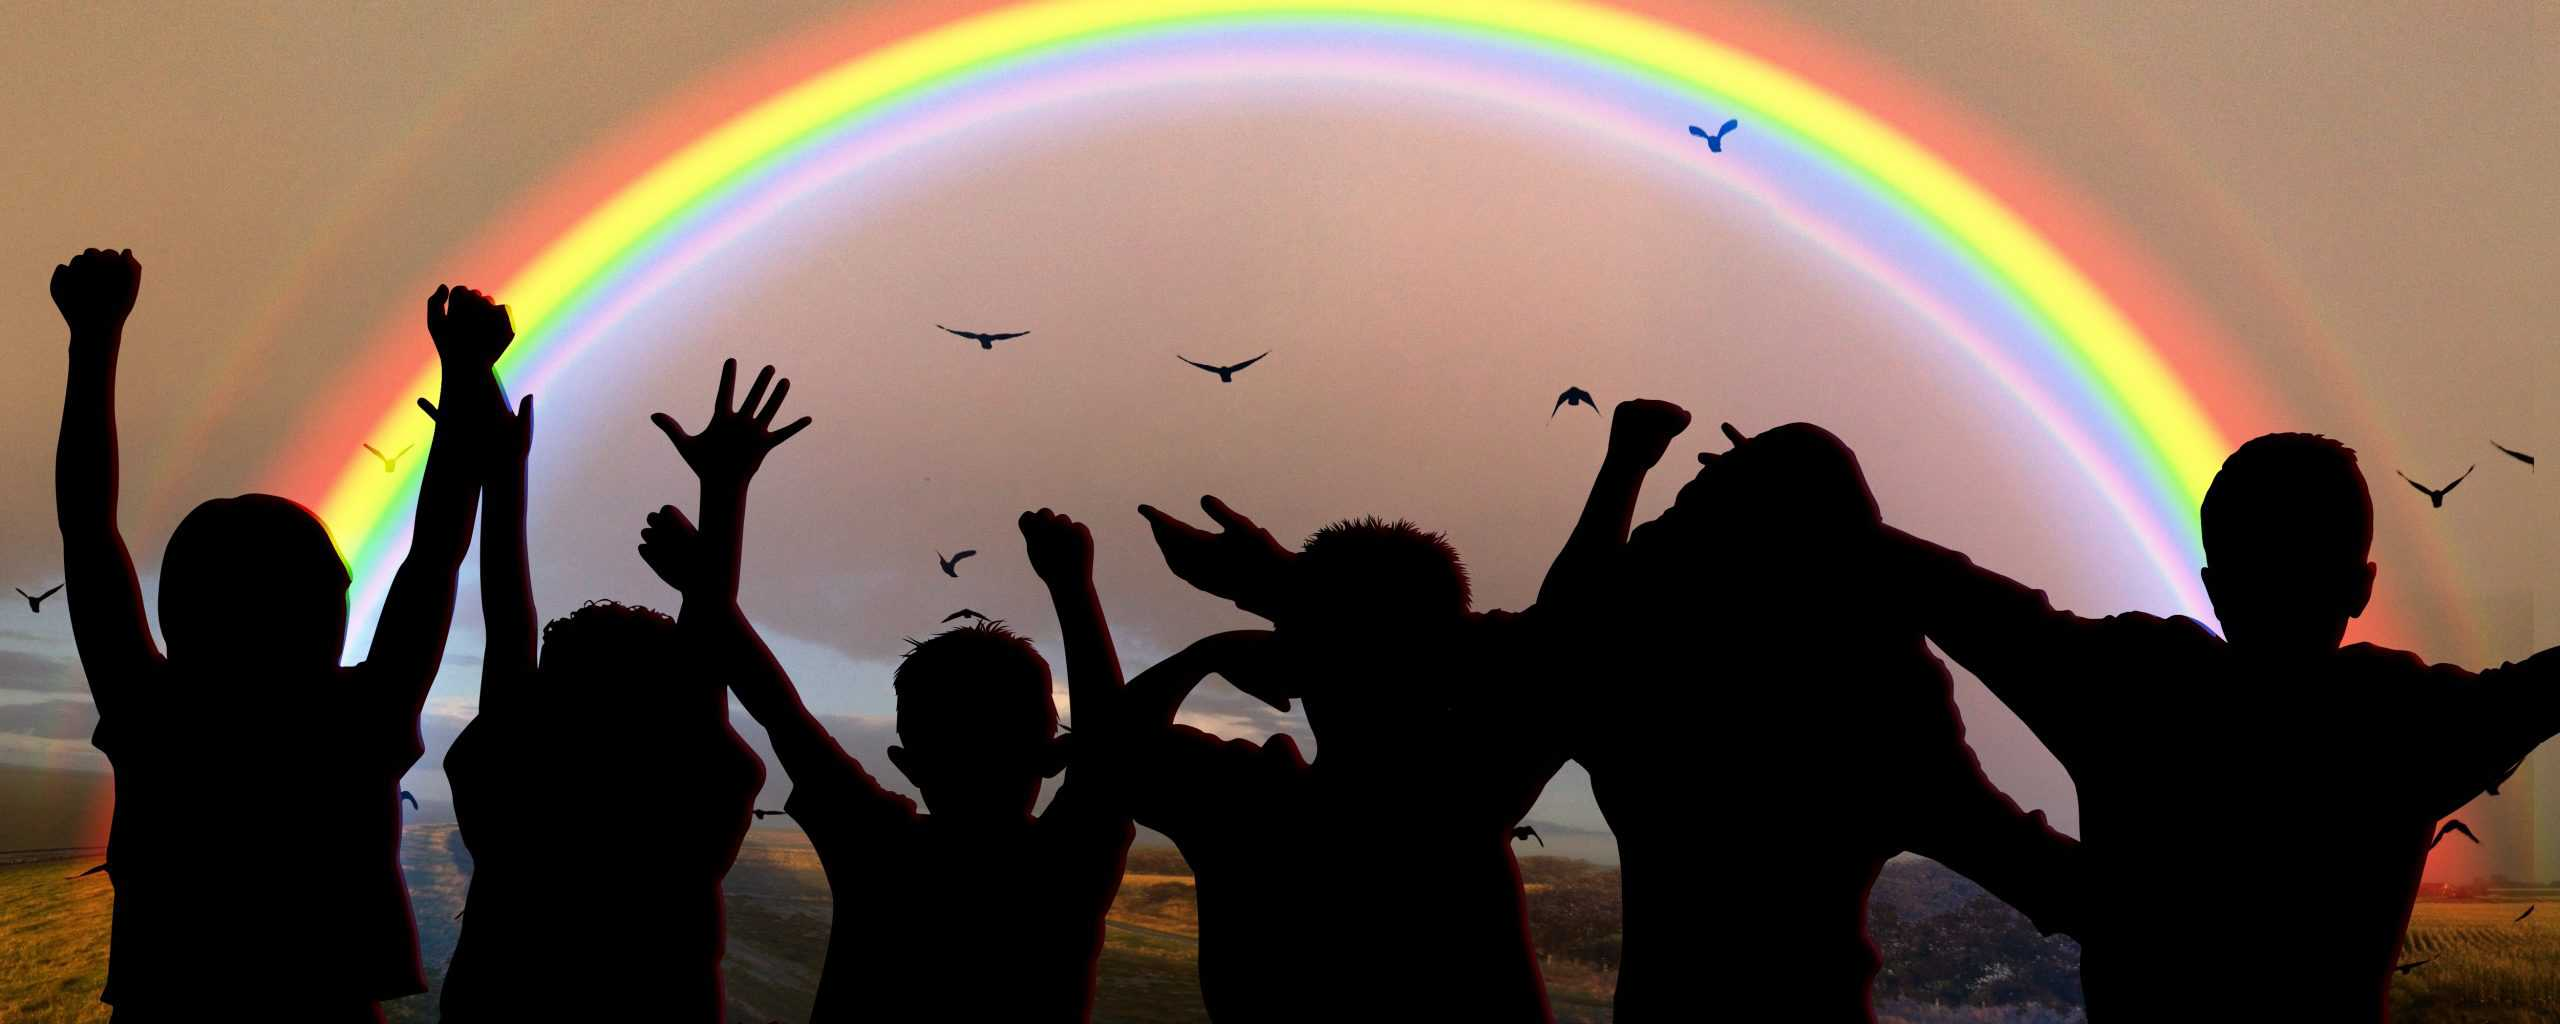 Silhouettes of children in front of a rainbow.